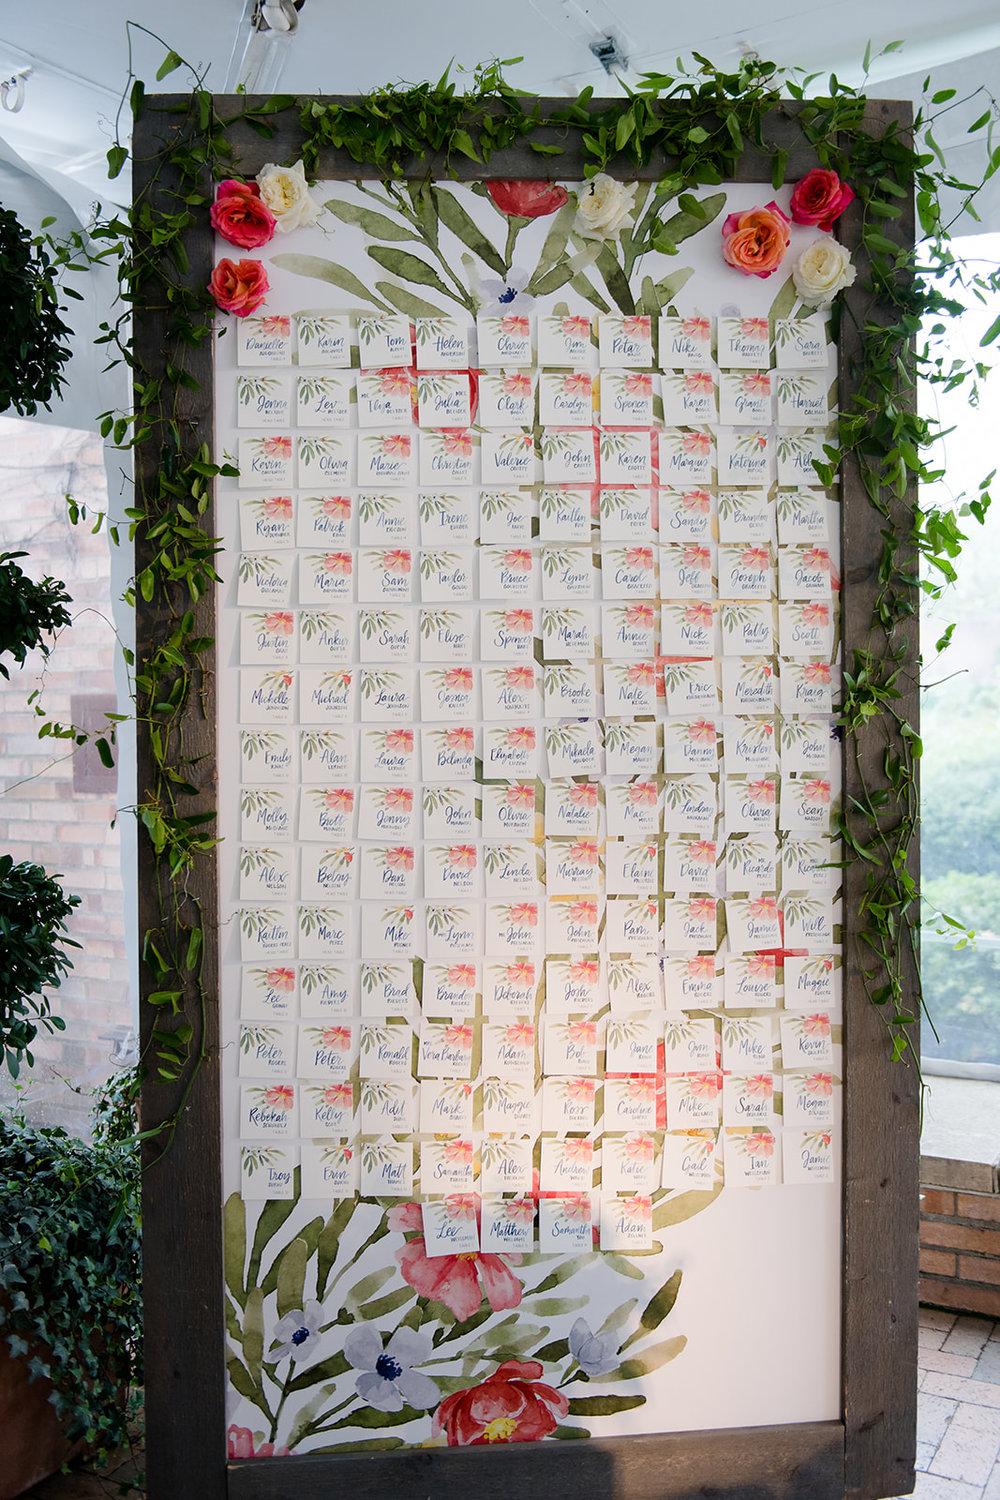 Hand painted floral wedding seating chart for tented rainy wedding at the Chicago Botanic Gardens